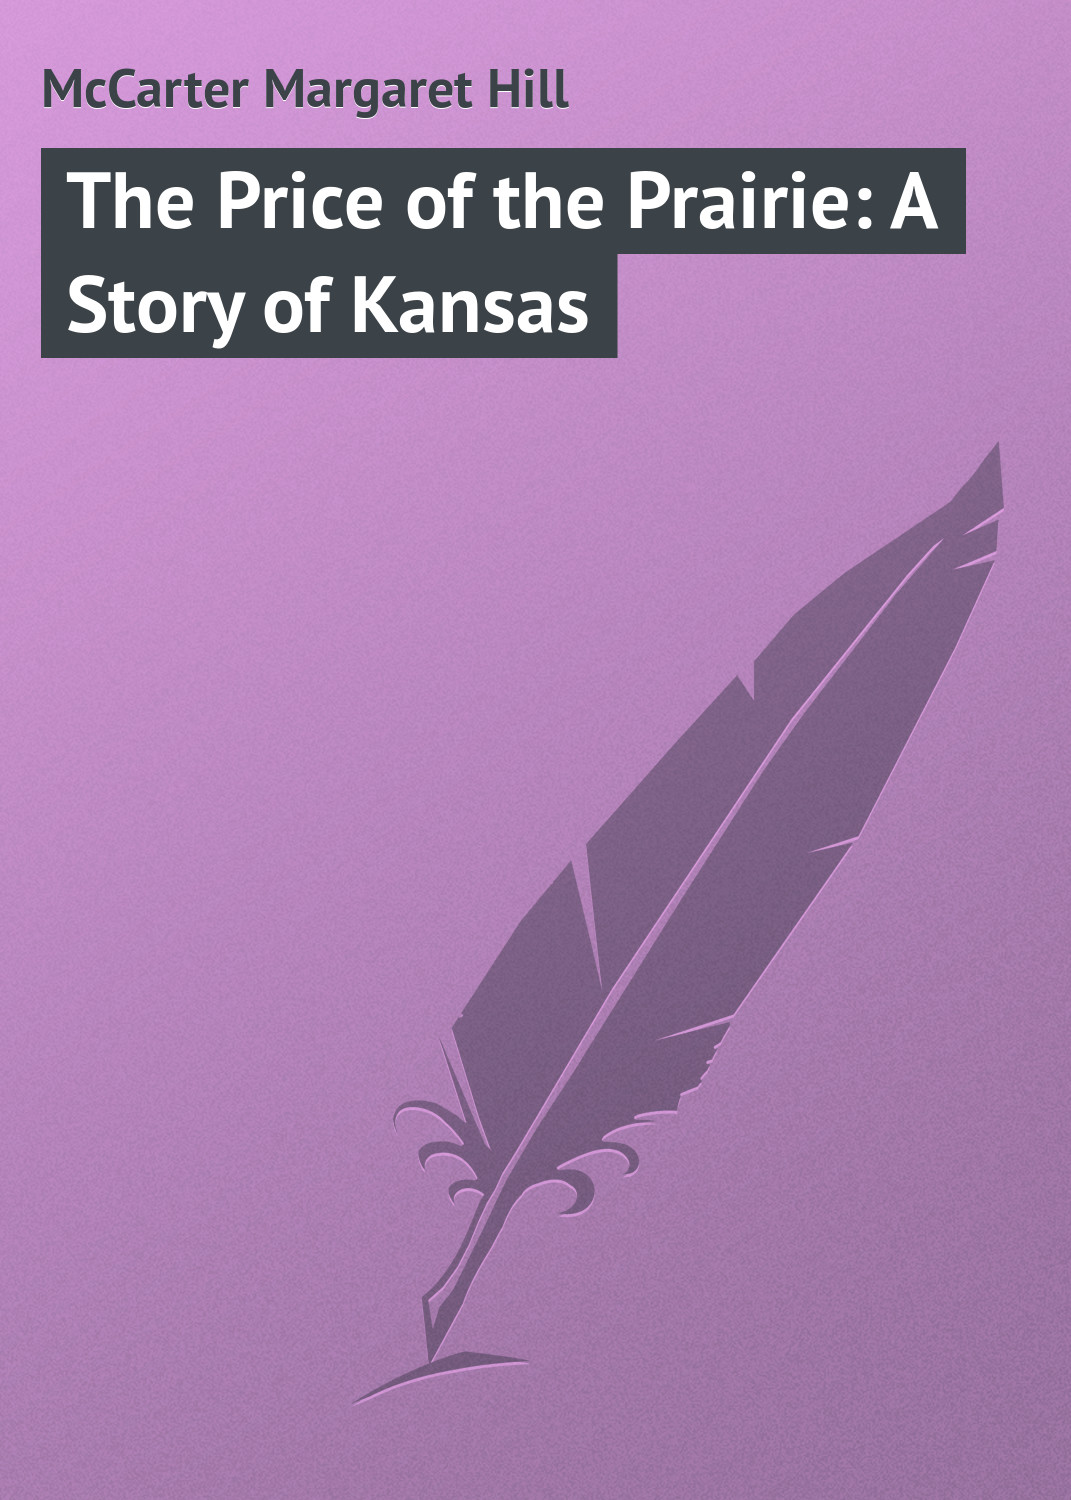 McCarter Margaret Hill The Price of the Prairie: A Story of Kansas graham margaret collier stories of the foot hills